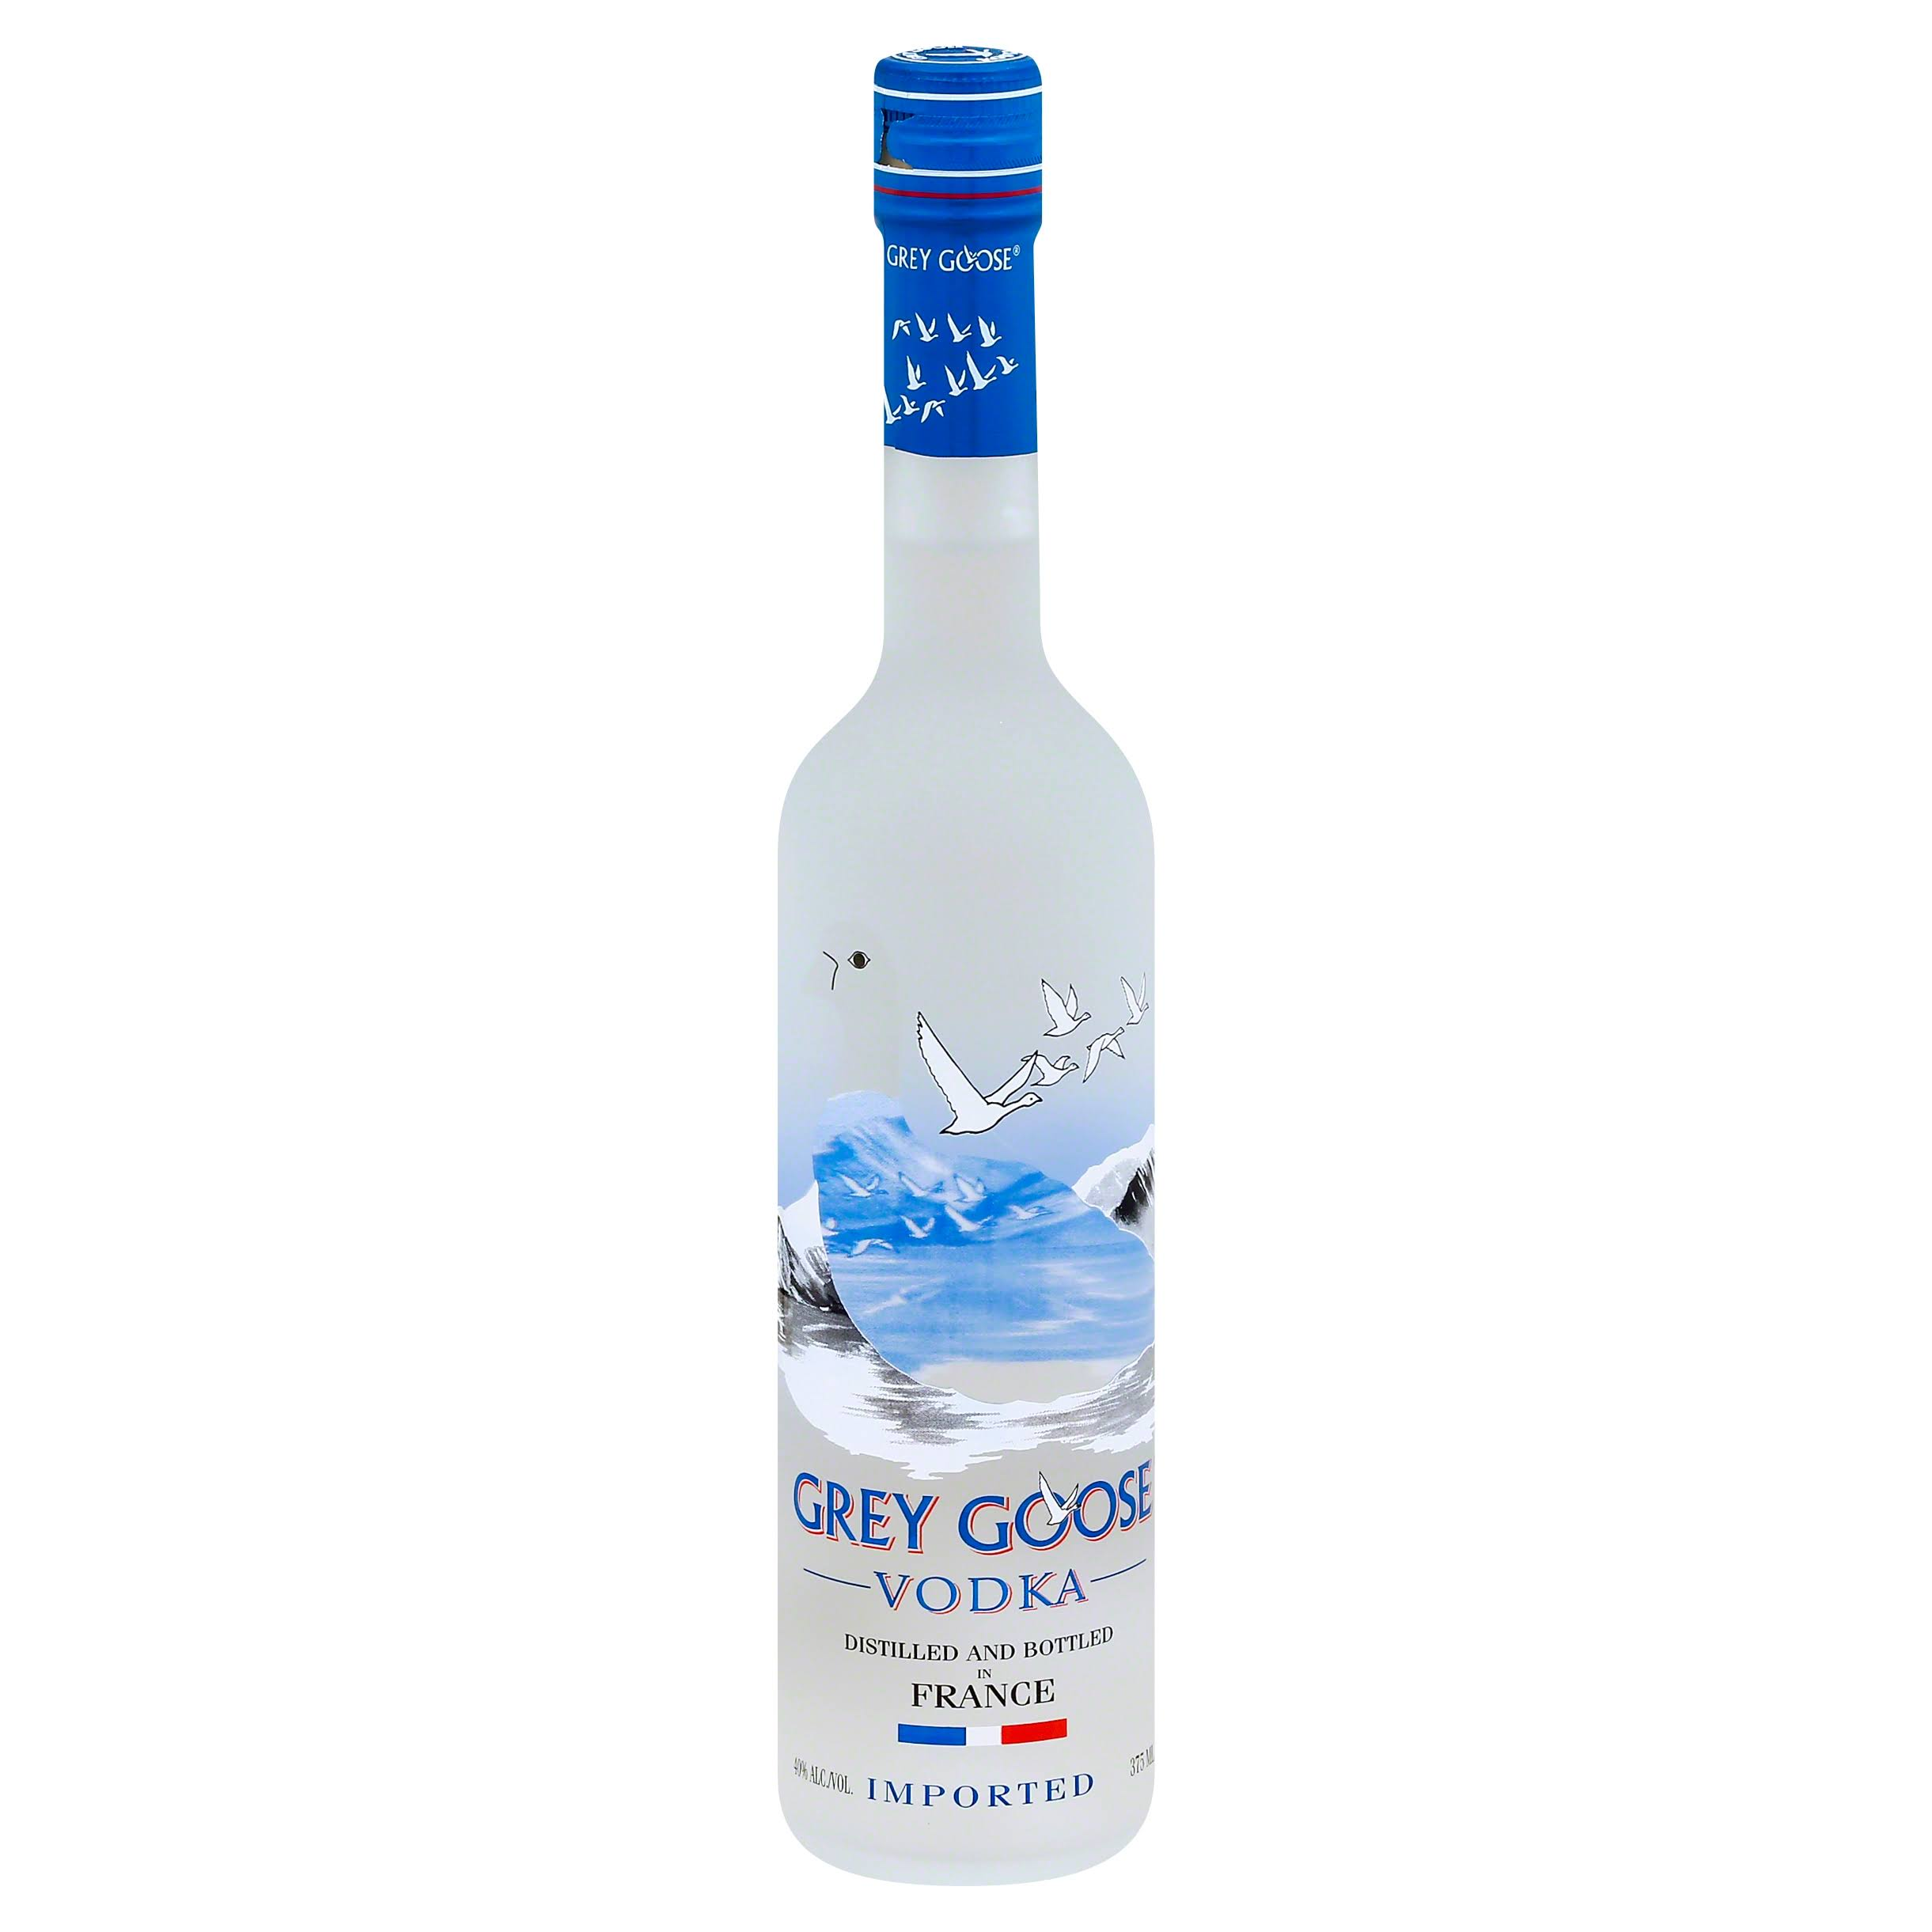 Grey Goose Vodka - 375ml